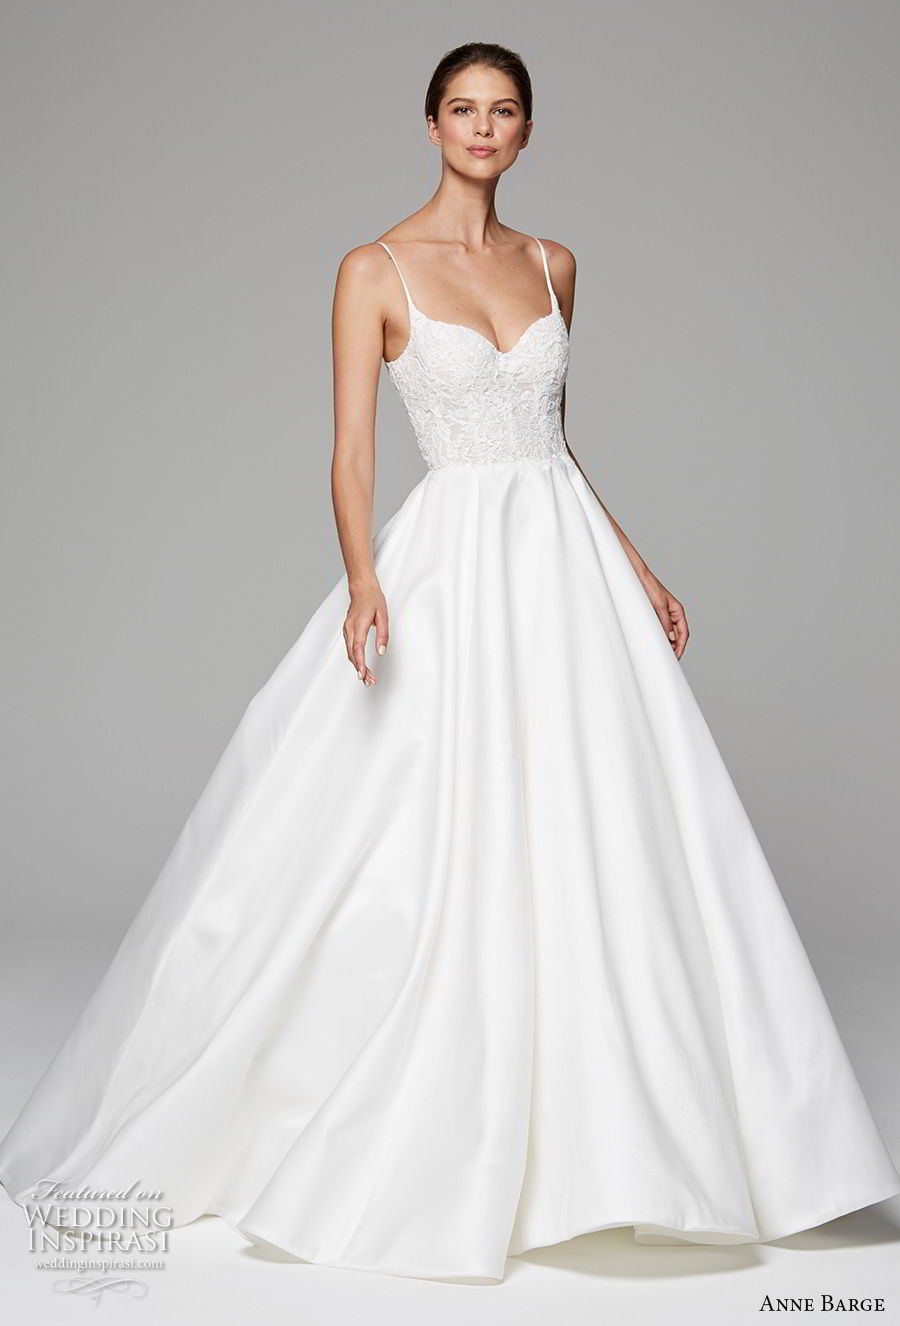 anne barge fall 2018 bridal sleeveless spaghetii sweetheart neckline heavily embellished bodice romantic princess a  line wedding dress open back sweep train (10) mv